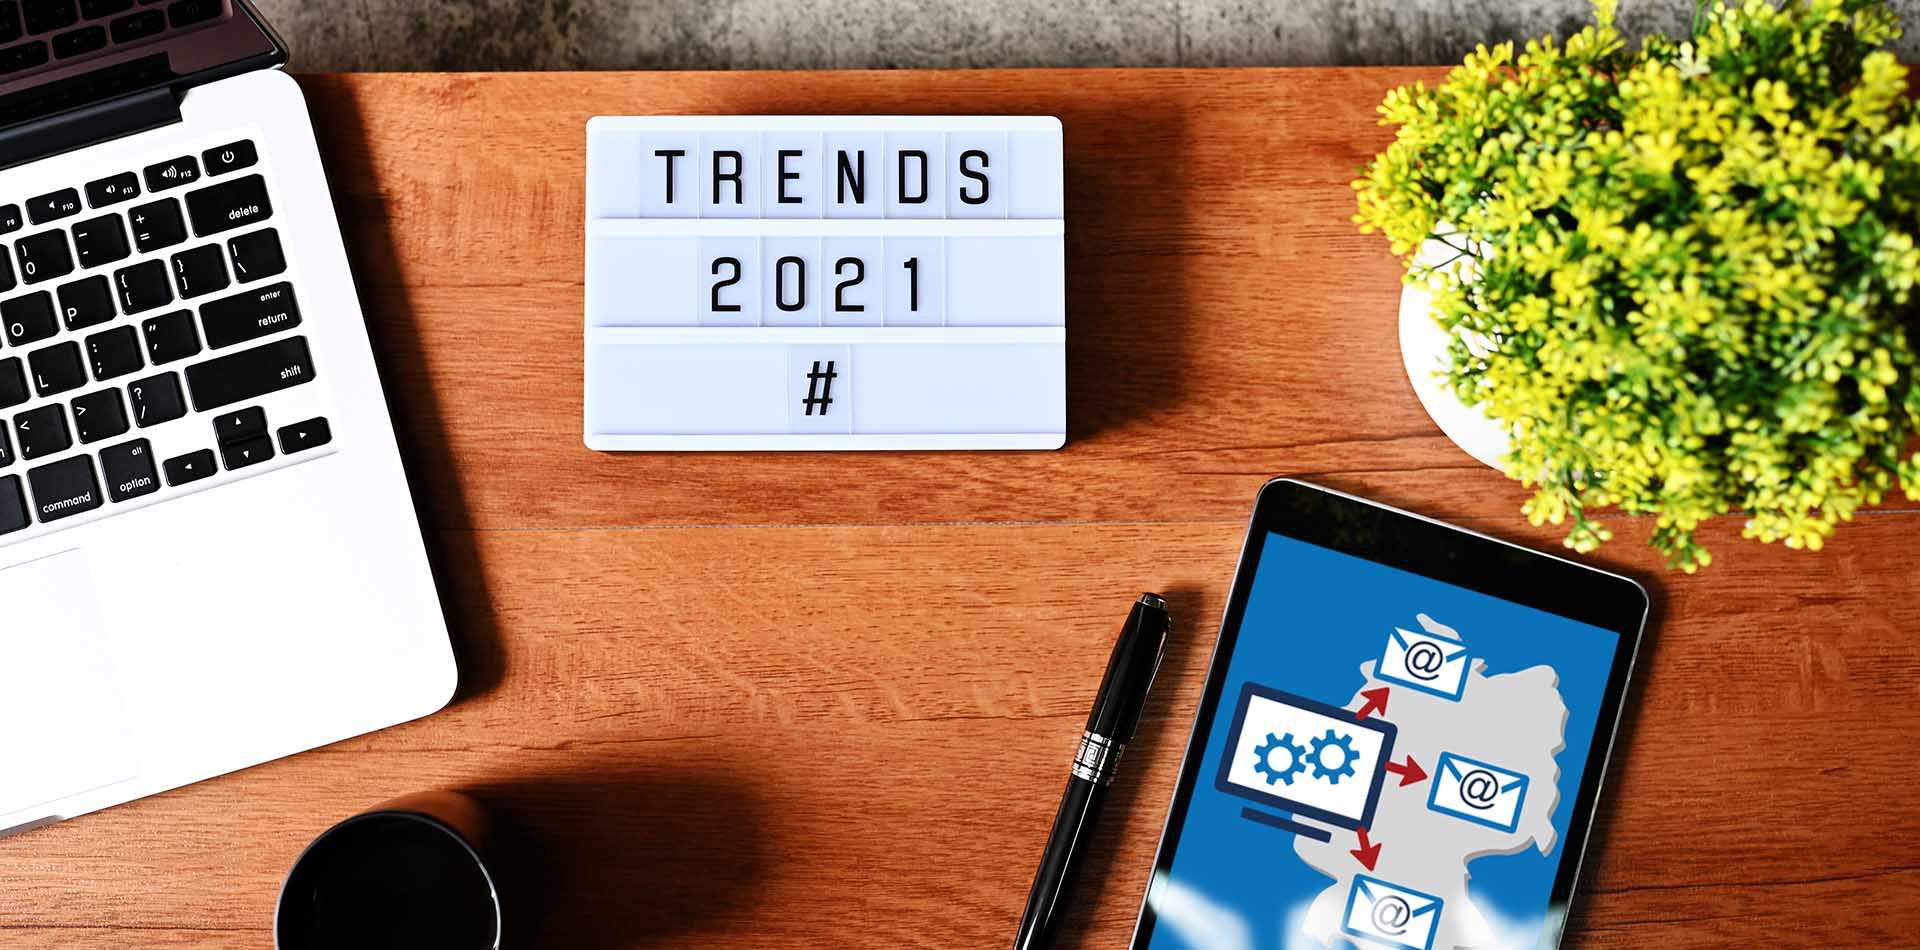 E-Mail Marketing Trends 2021